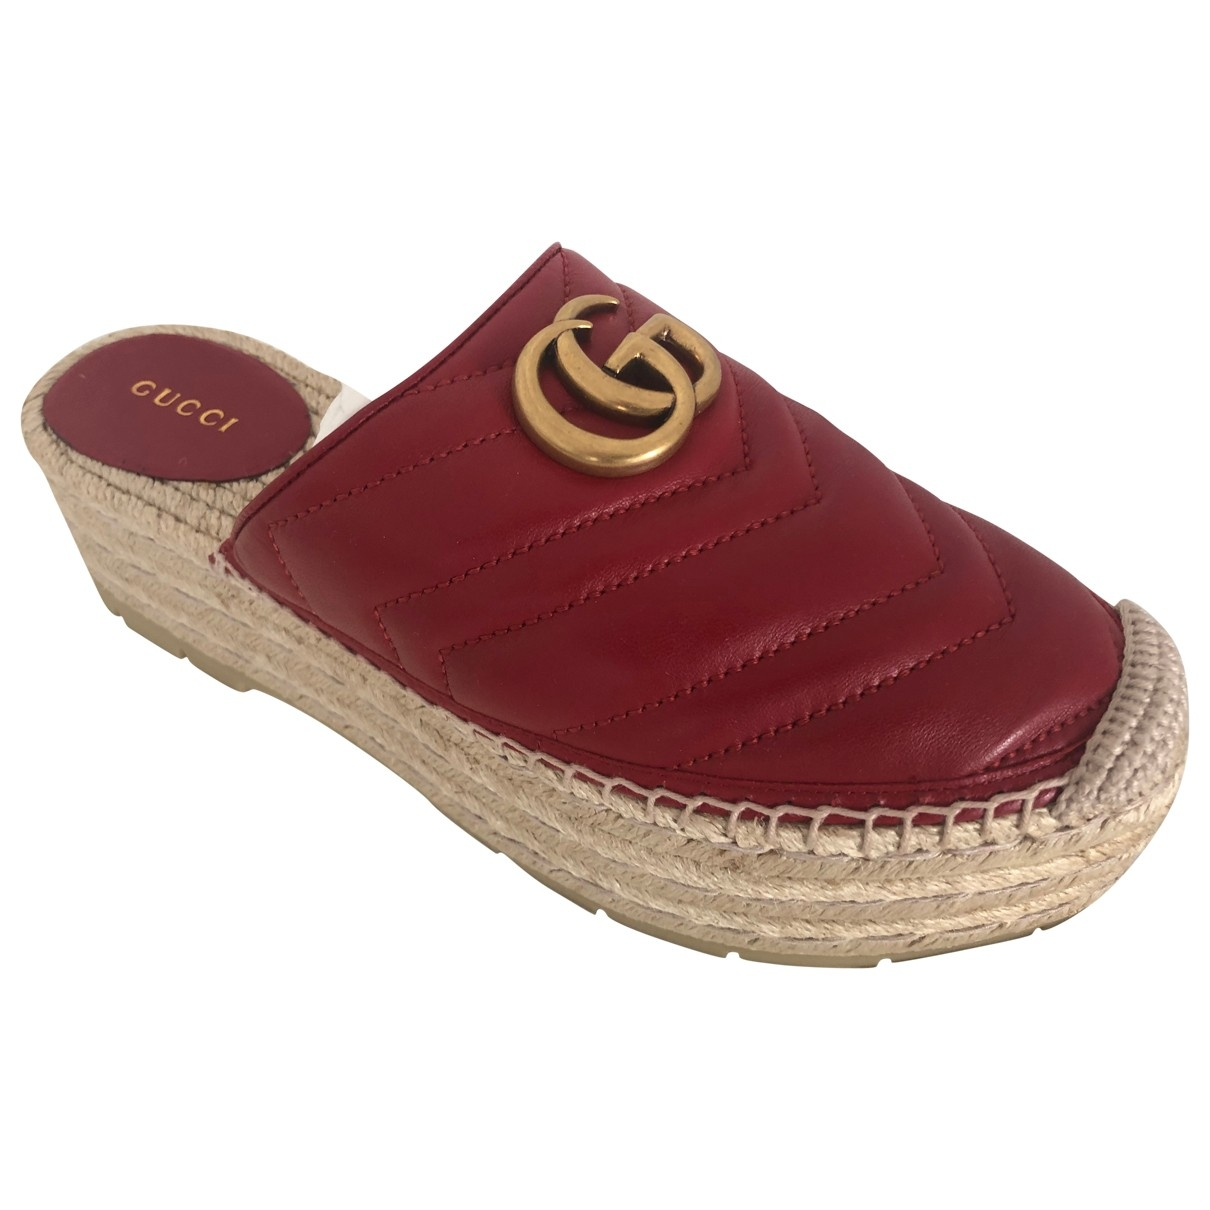 Gucci \N Red Leather Espadrilles for Women 37 EU